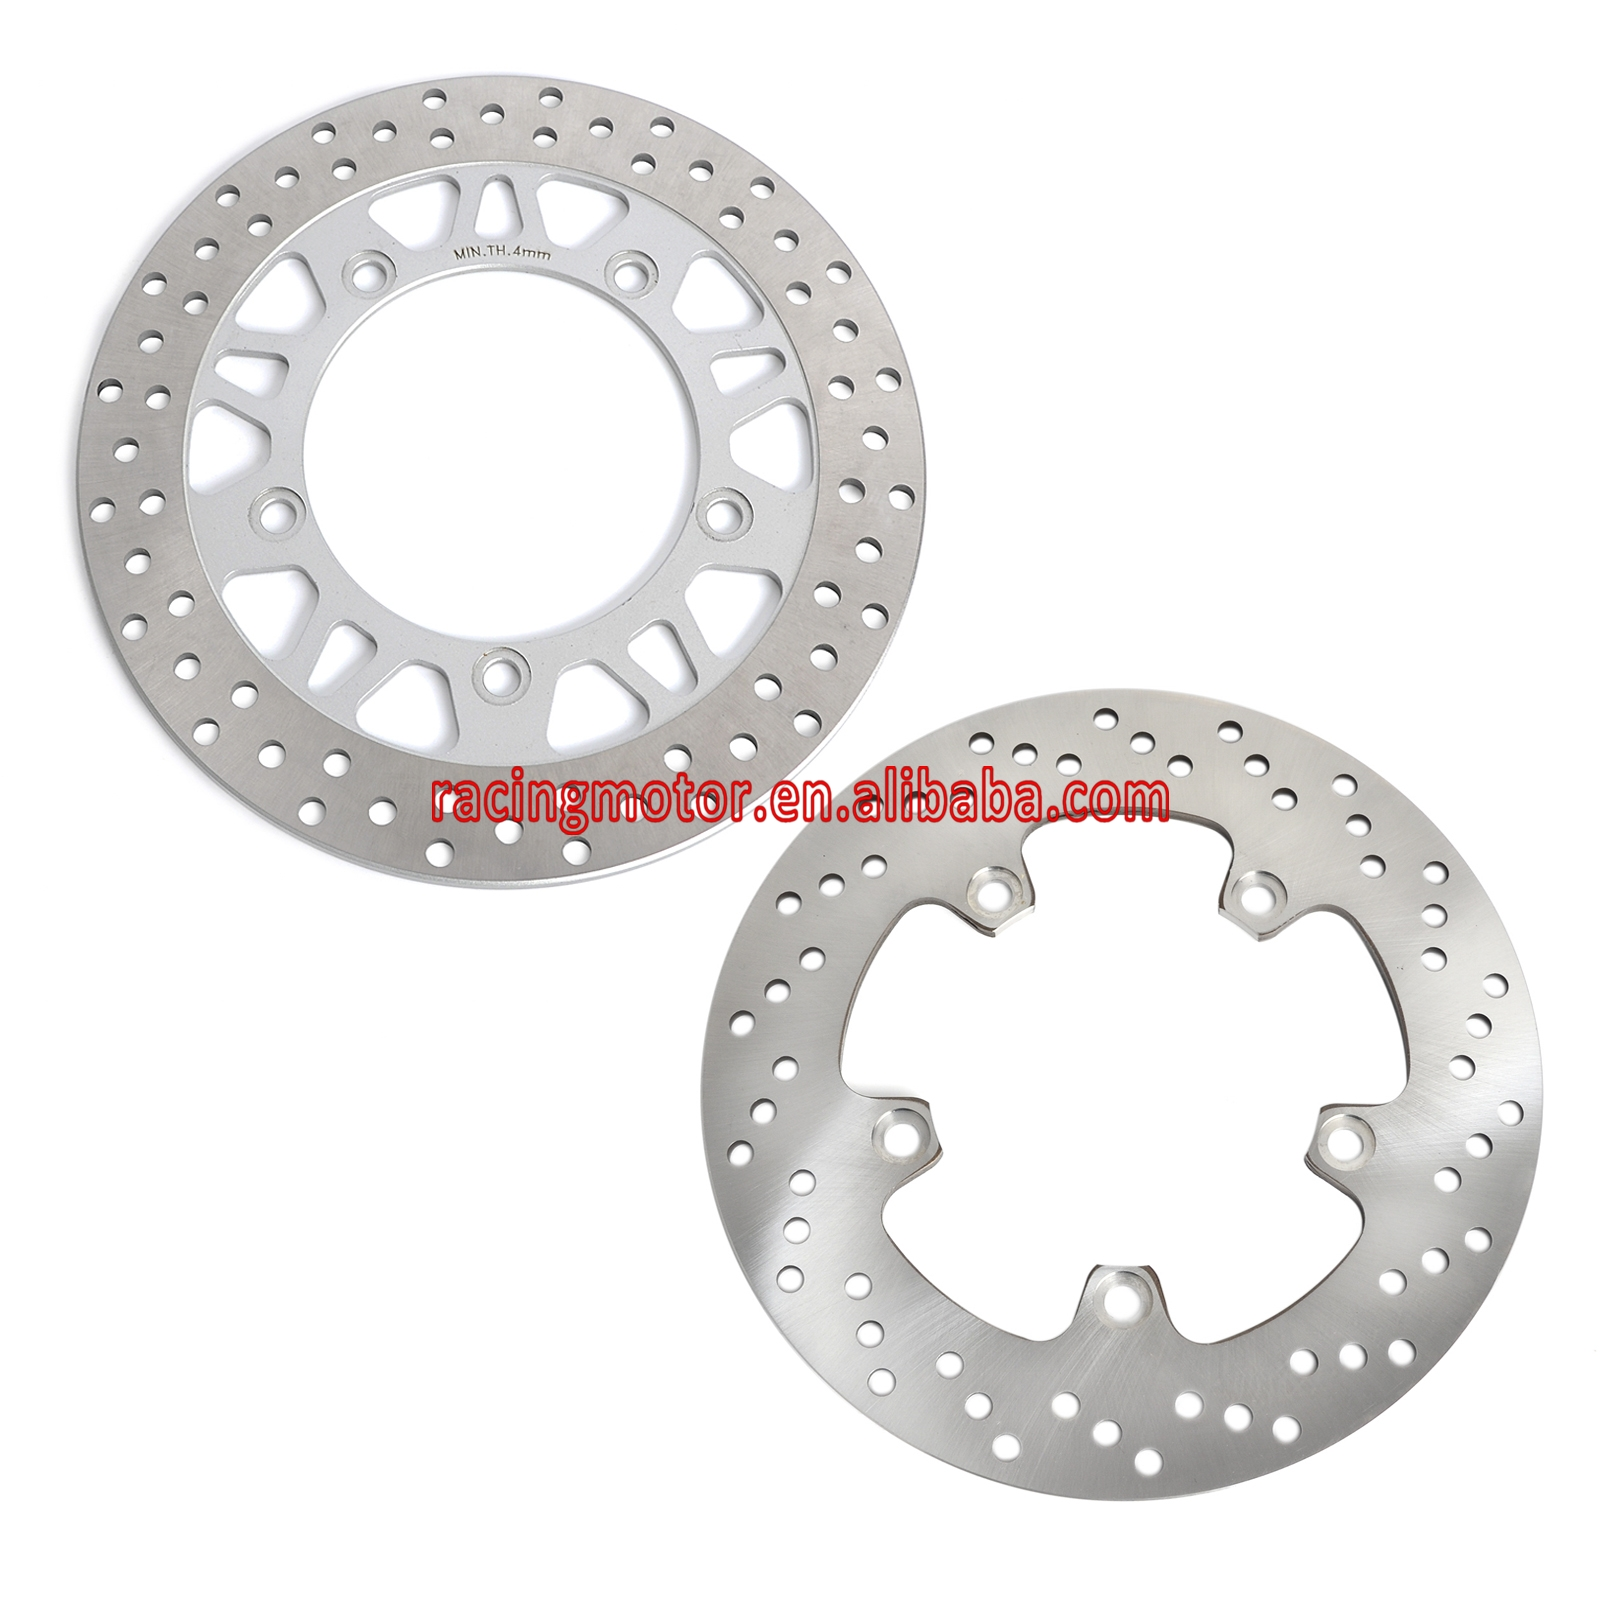 Motorycle Front & Rear Brake Disc Rotor for Suzuki AN650 2004 - 2012 2005 2006 2007 2008 2009 2010 2011 AN 650 motocross dirt bike enduro off road wheel rim spoke shrouds skins covers for yamaha yzf r6 2005 2006 2007 2008 2009 2010 2011 20